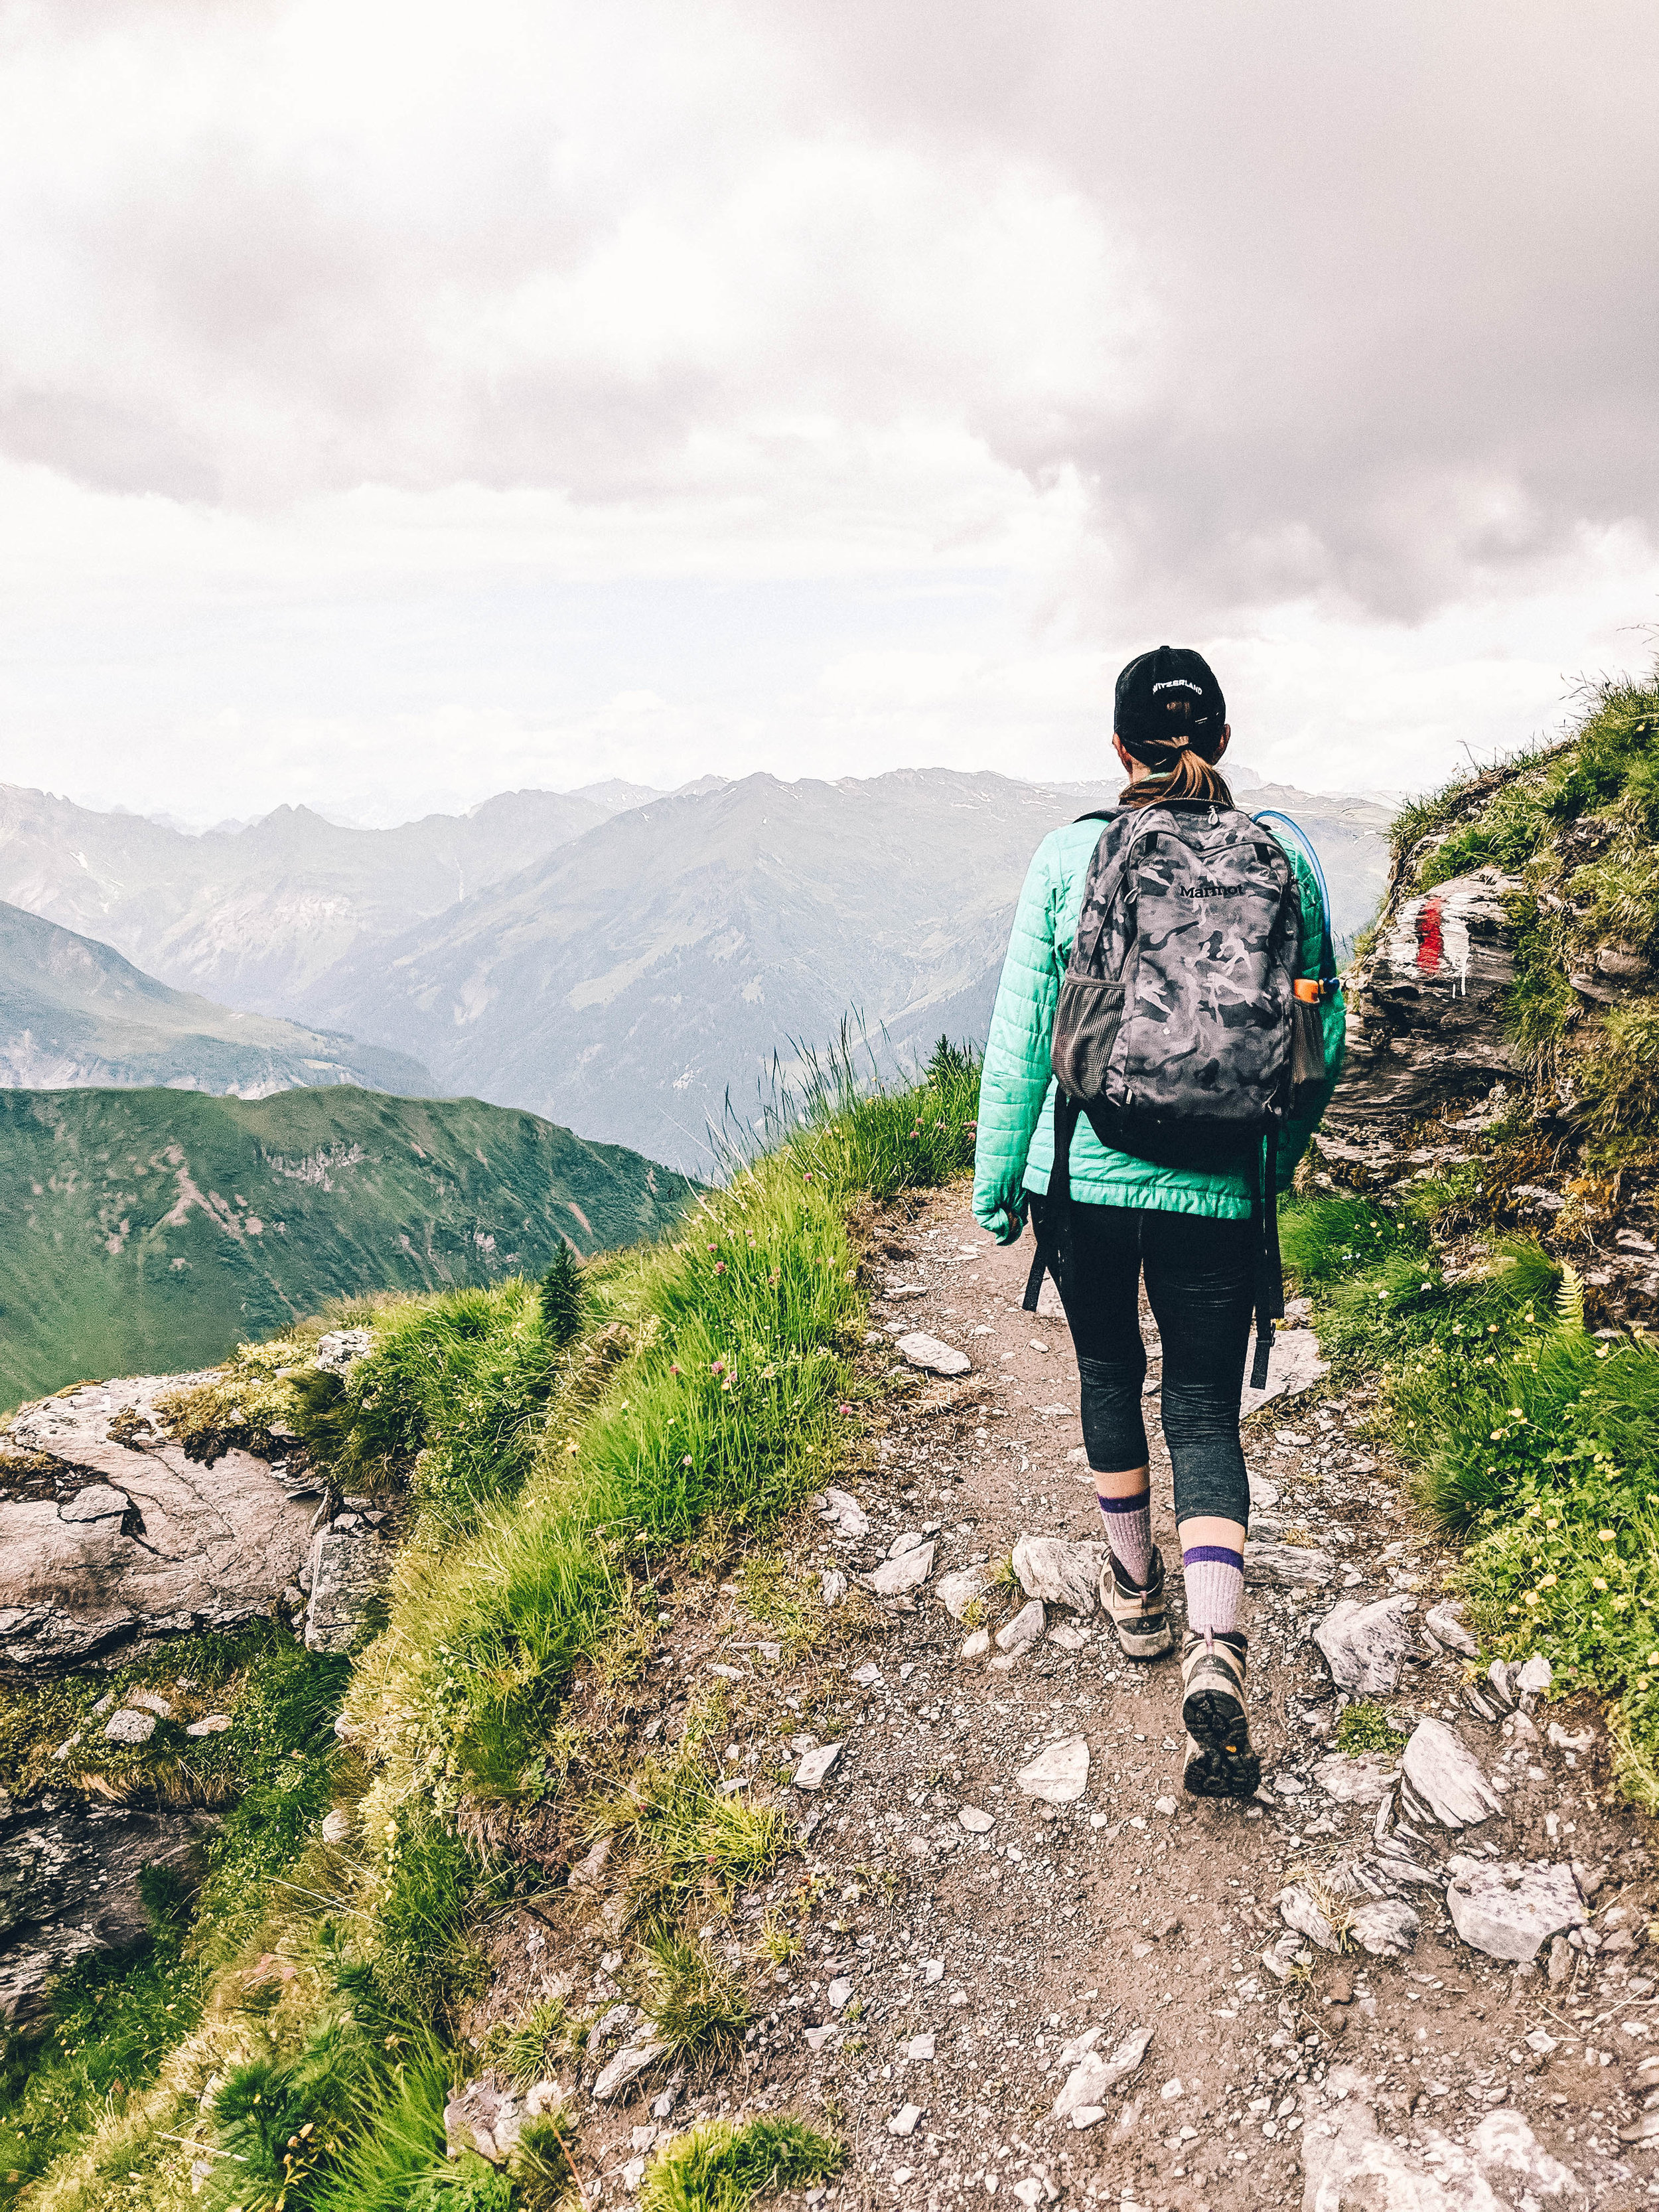 Hiking the Pizol Five Lakes Trail in Switzerland